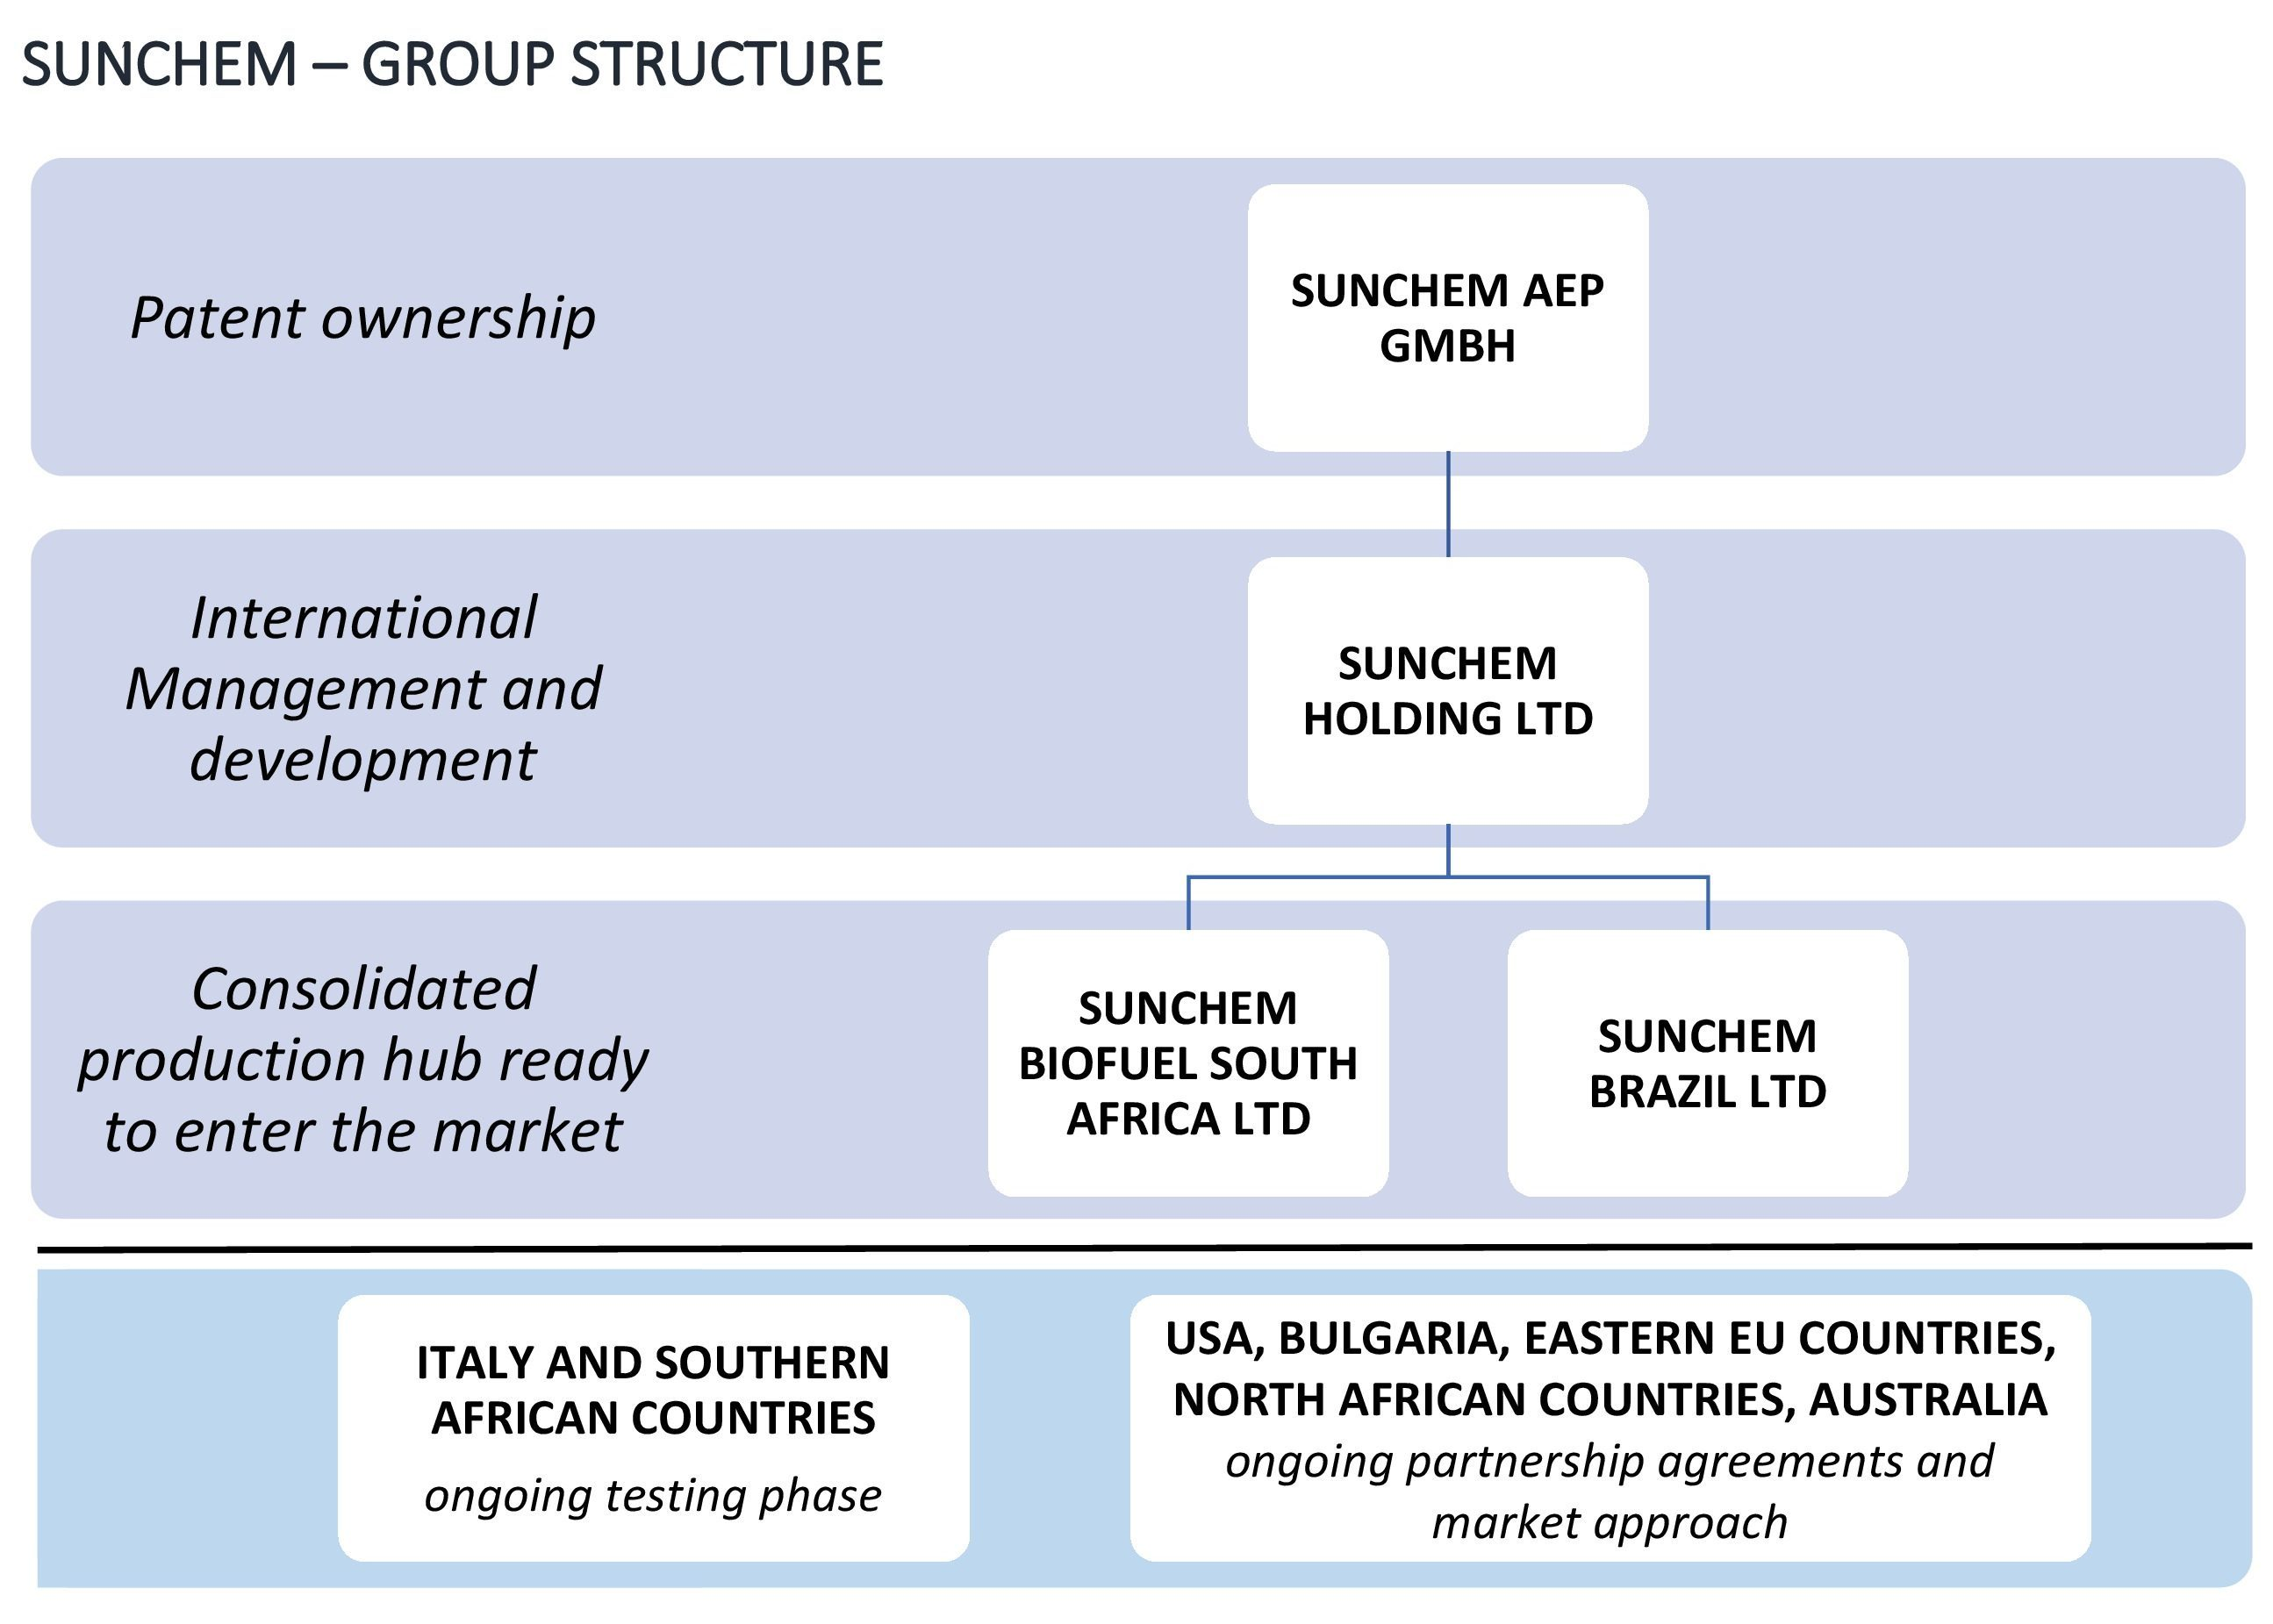 Sunchem-Group